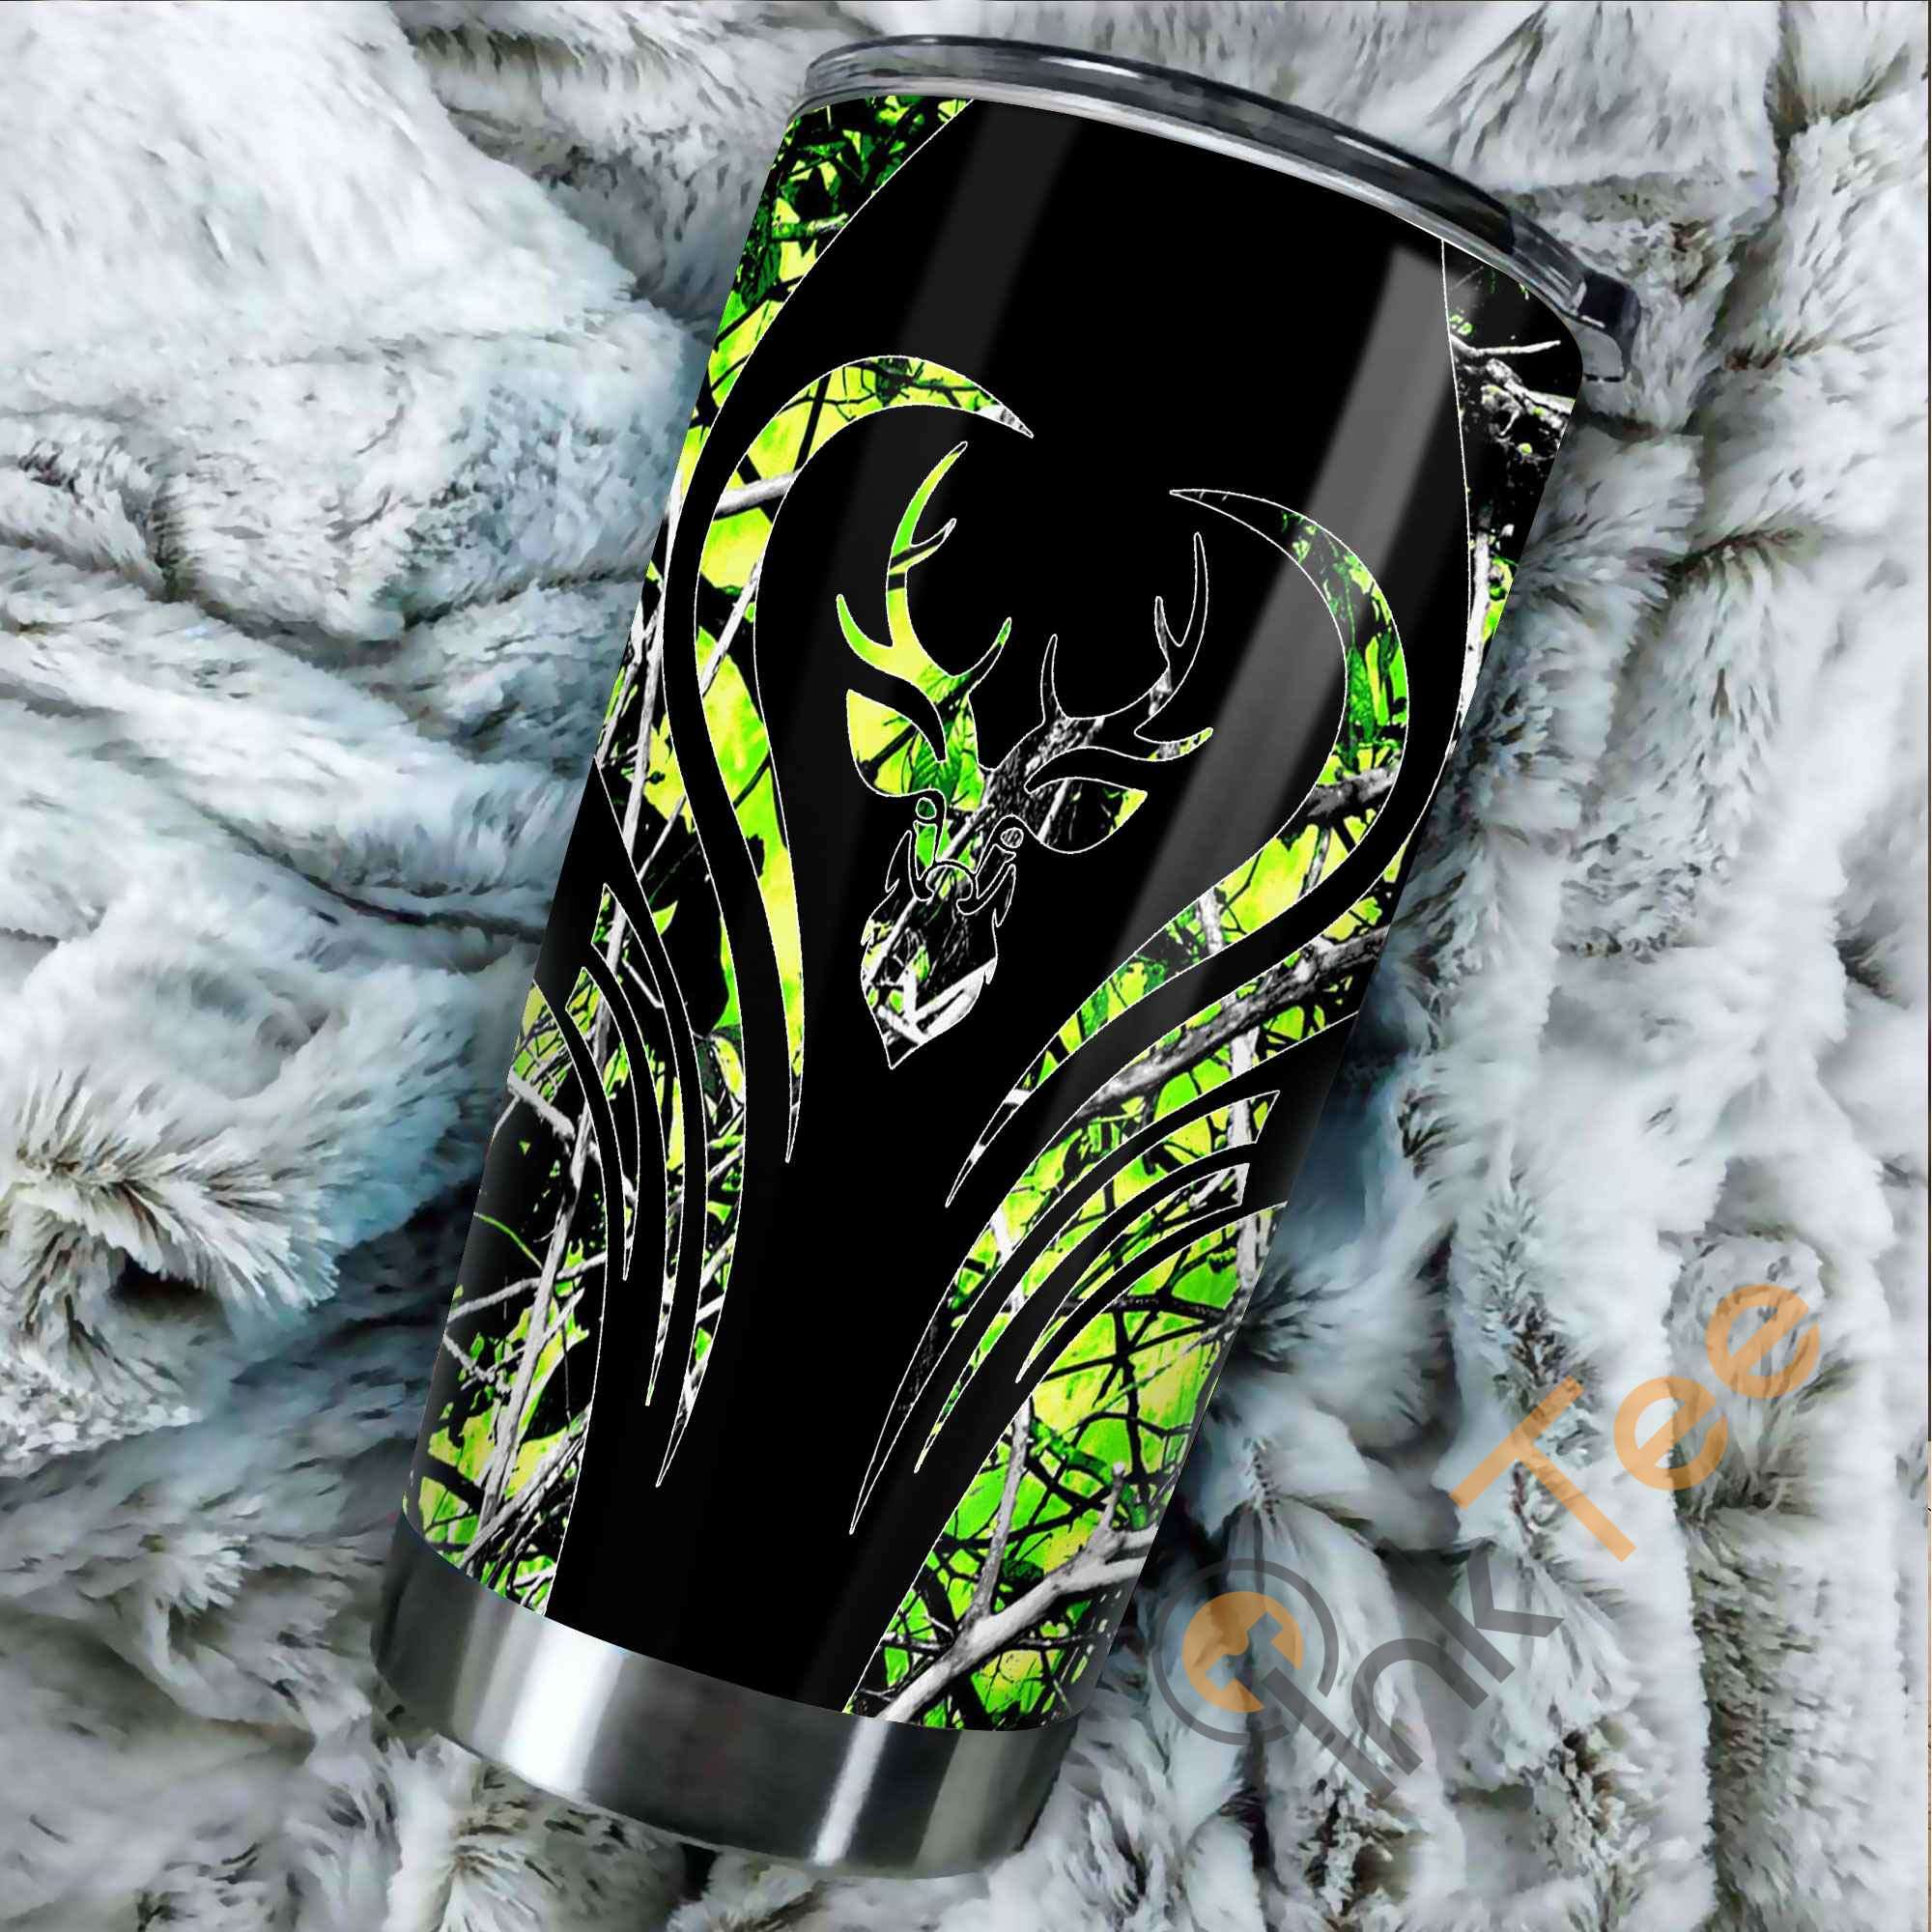 Beautiful Deer Hunting Camo Amazon Best Seller Sku 3219 Stainless Steel Tumbler